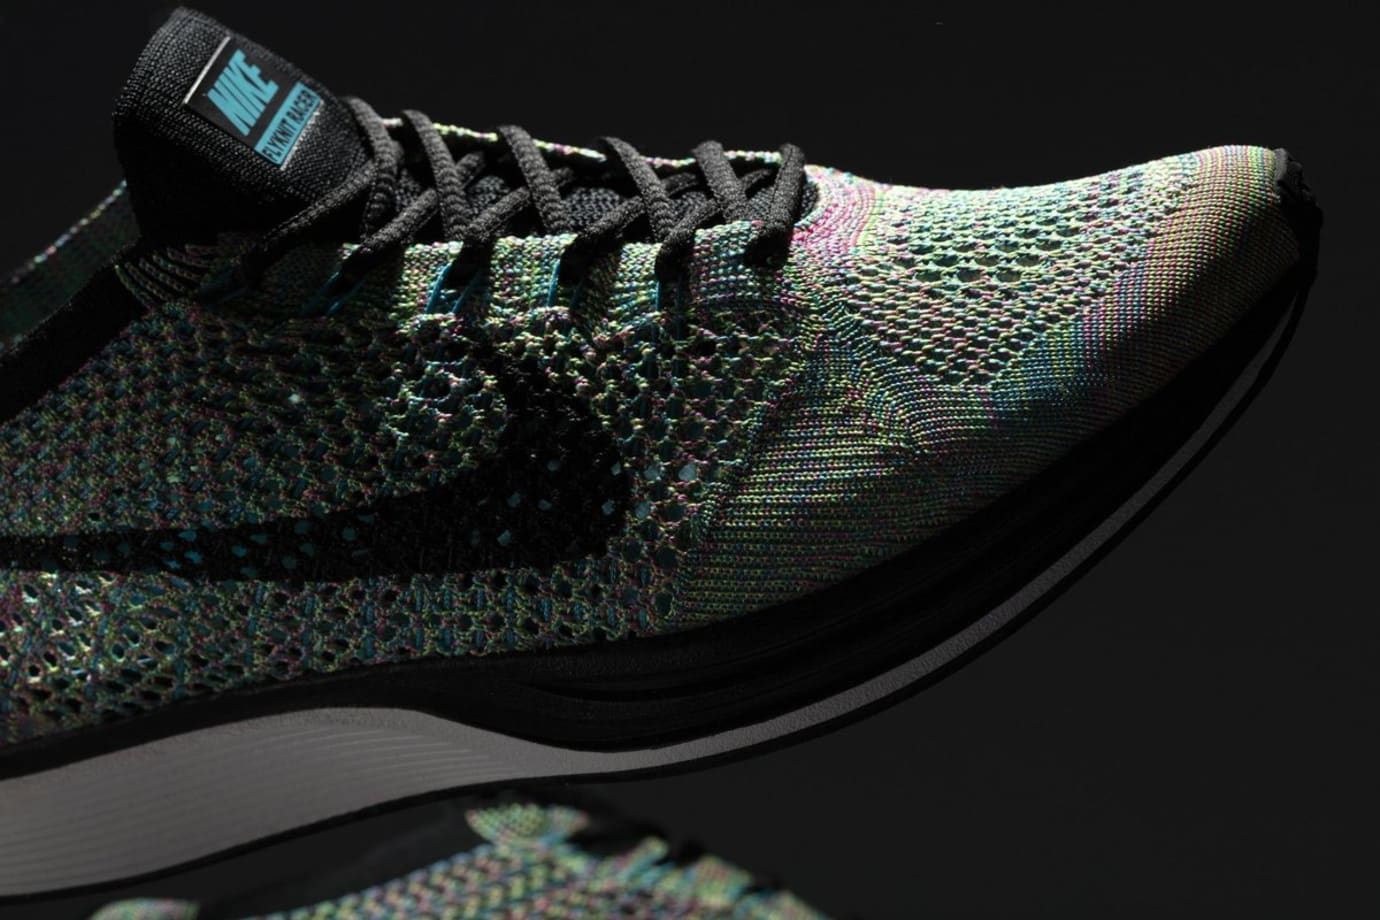 reputable site 67666 920ac Multicolor Nike Flyknit 2017 Toe